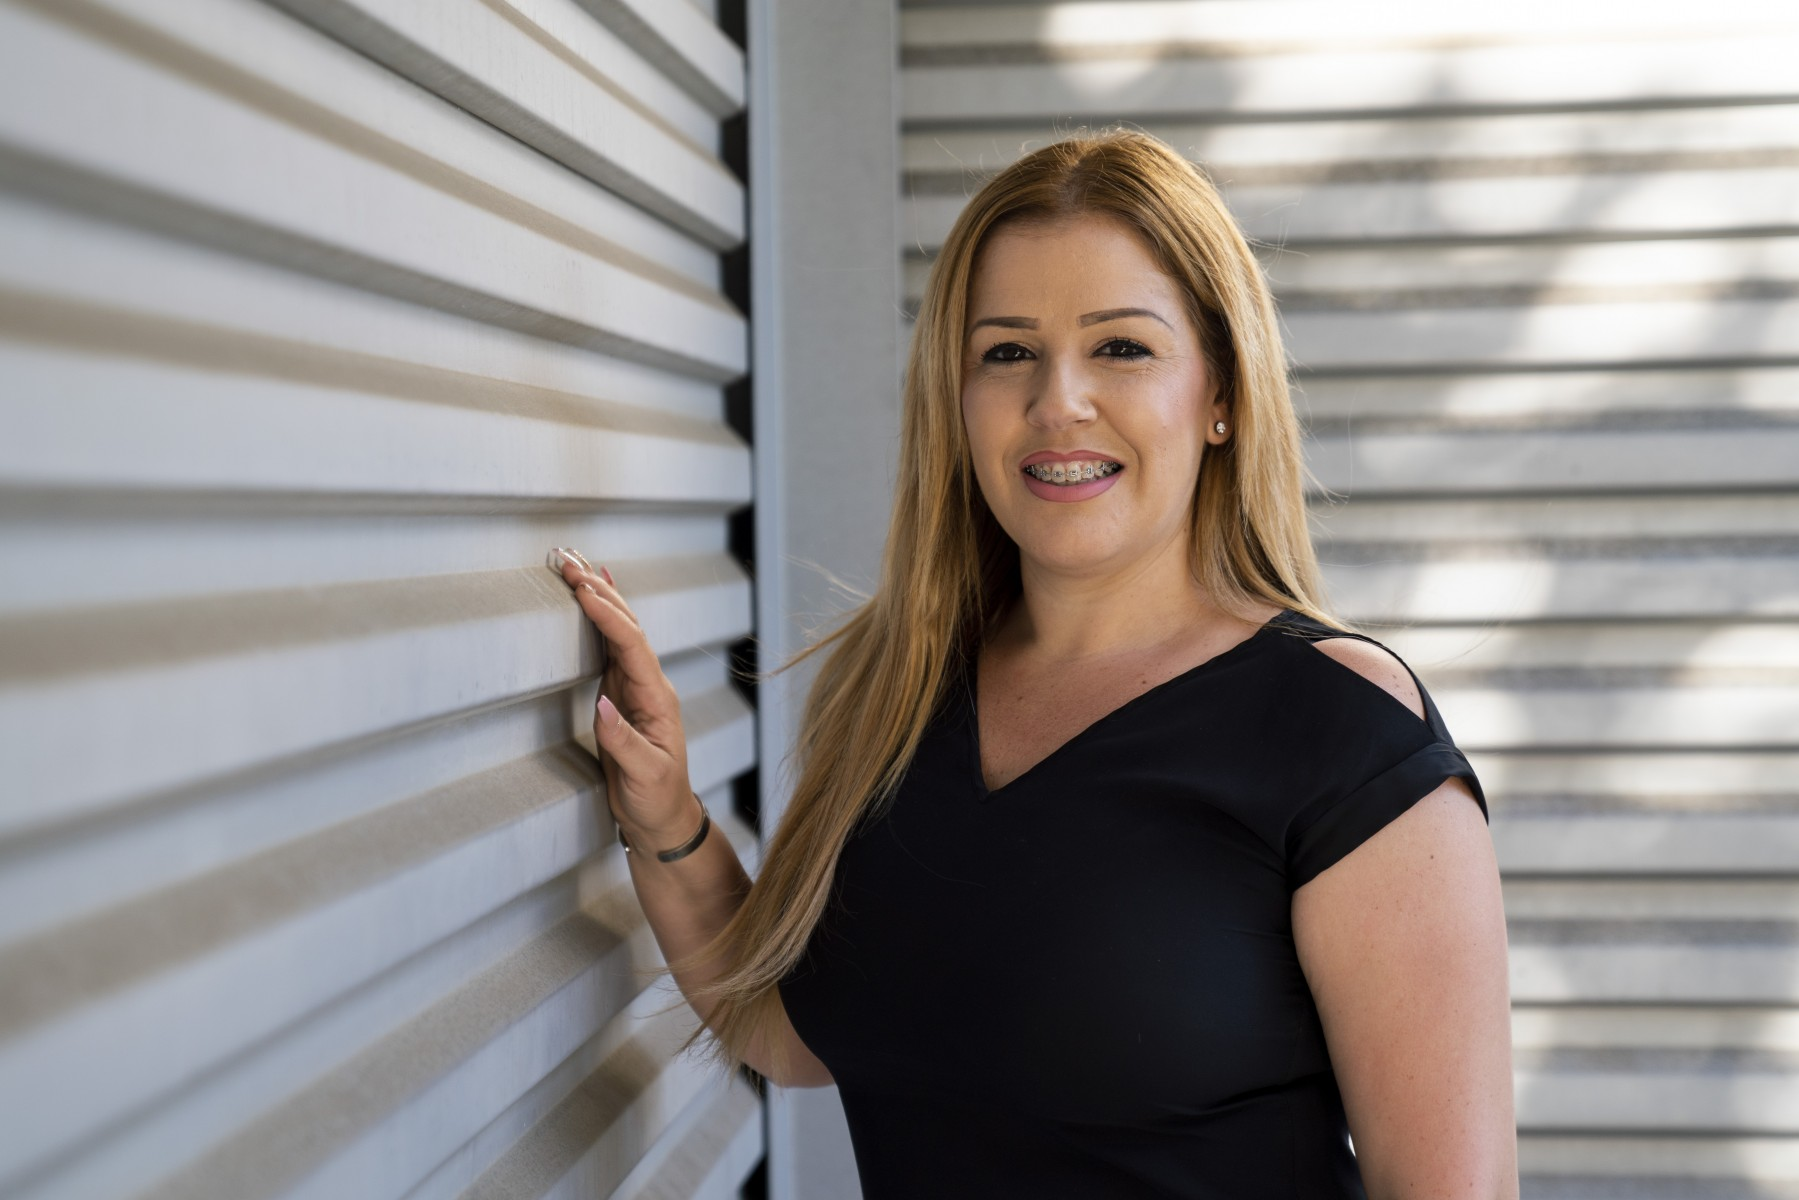 Maria Valdivia has overcome drug addiction and incarceration to earn her bachelor's at CSUSM. Now she is enrolled in the university's MBA program. Photo by Chandler Oriente